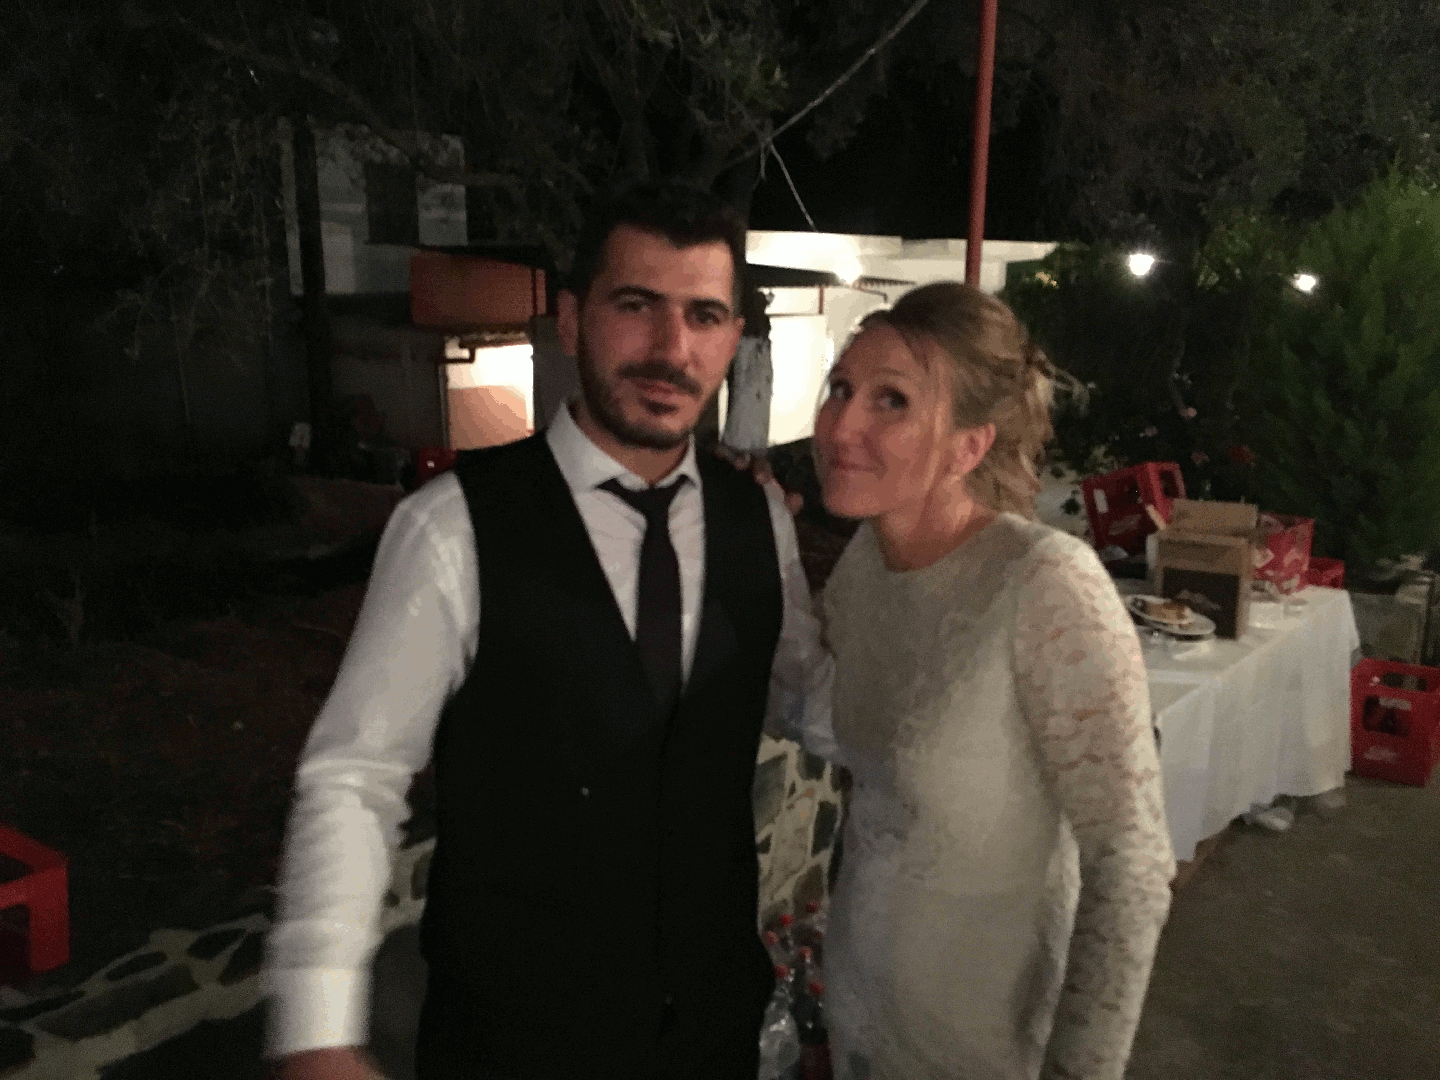 wedding Manolis Skalidakis in Vlatos 2